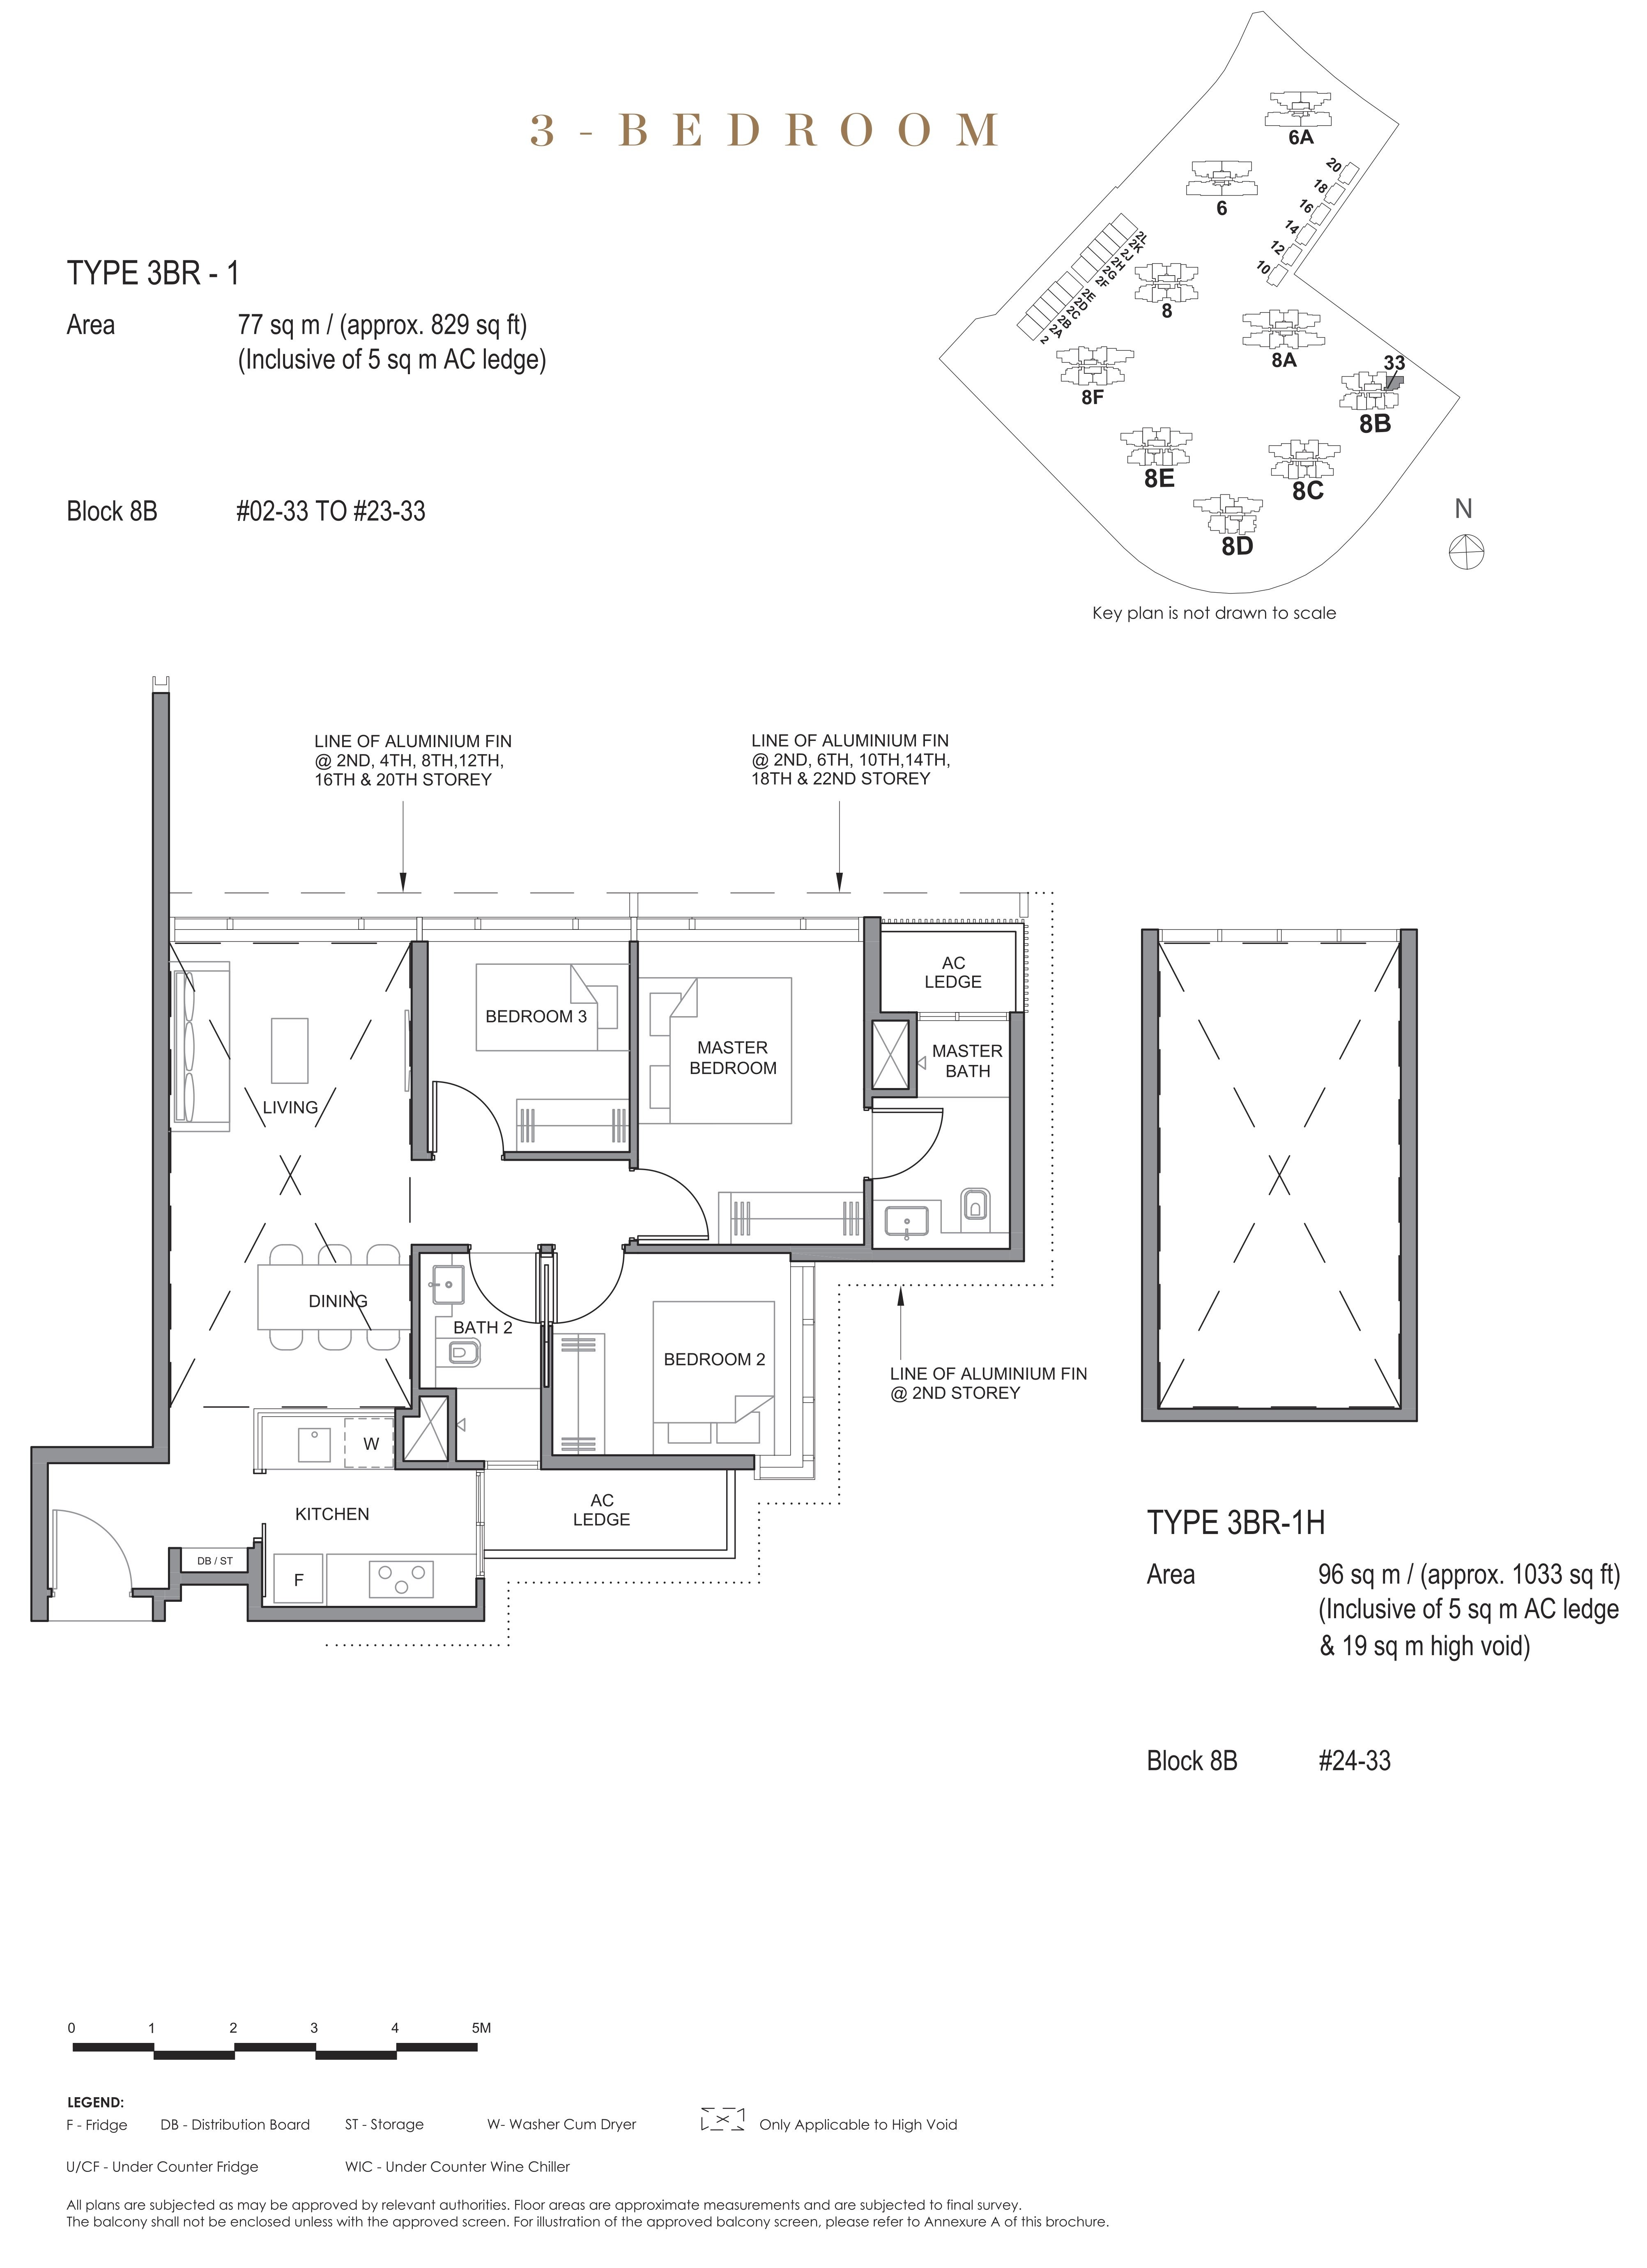 Parc Clematis 锦泰门第 contemporary 3 bedroom 3卧房 3 BR-1